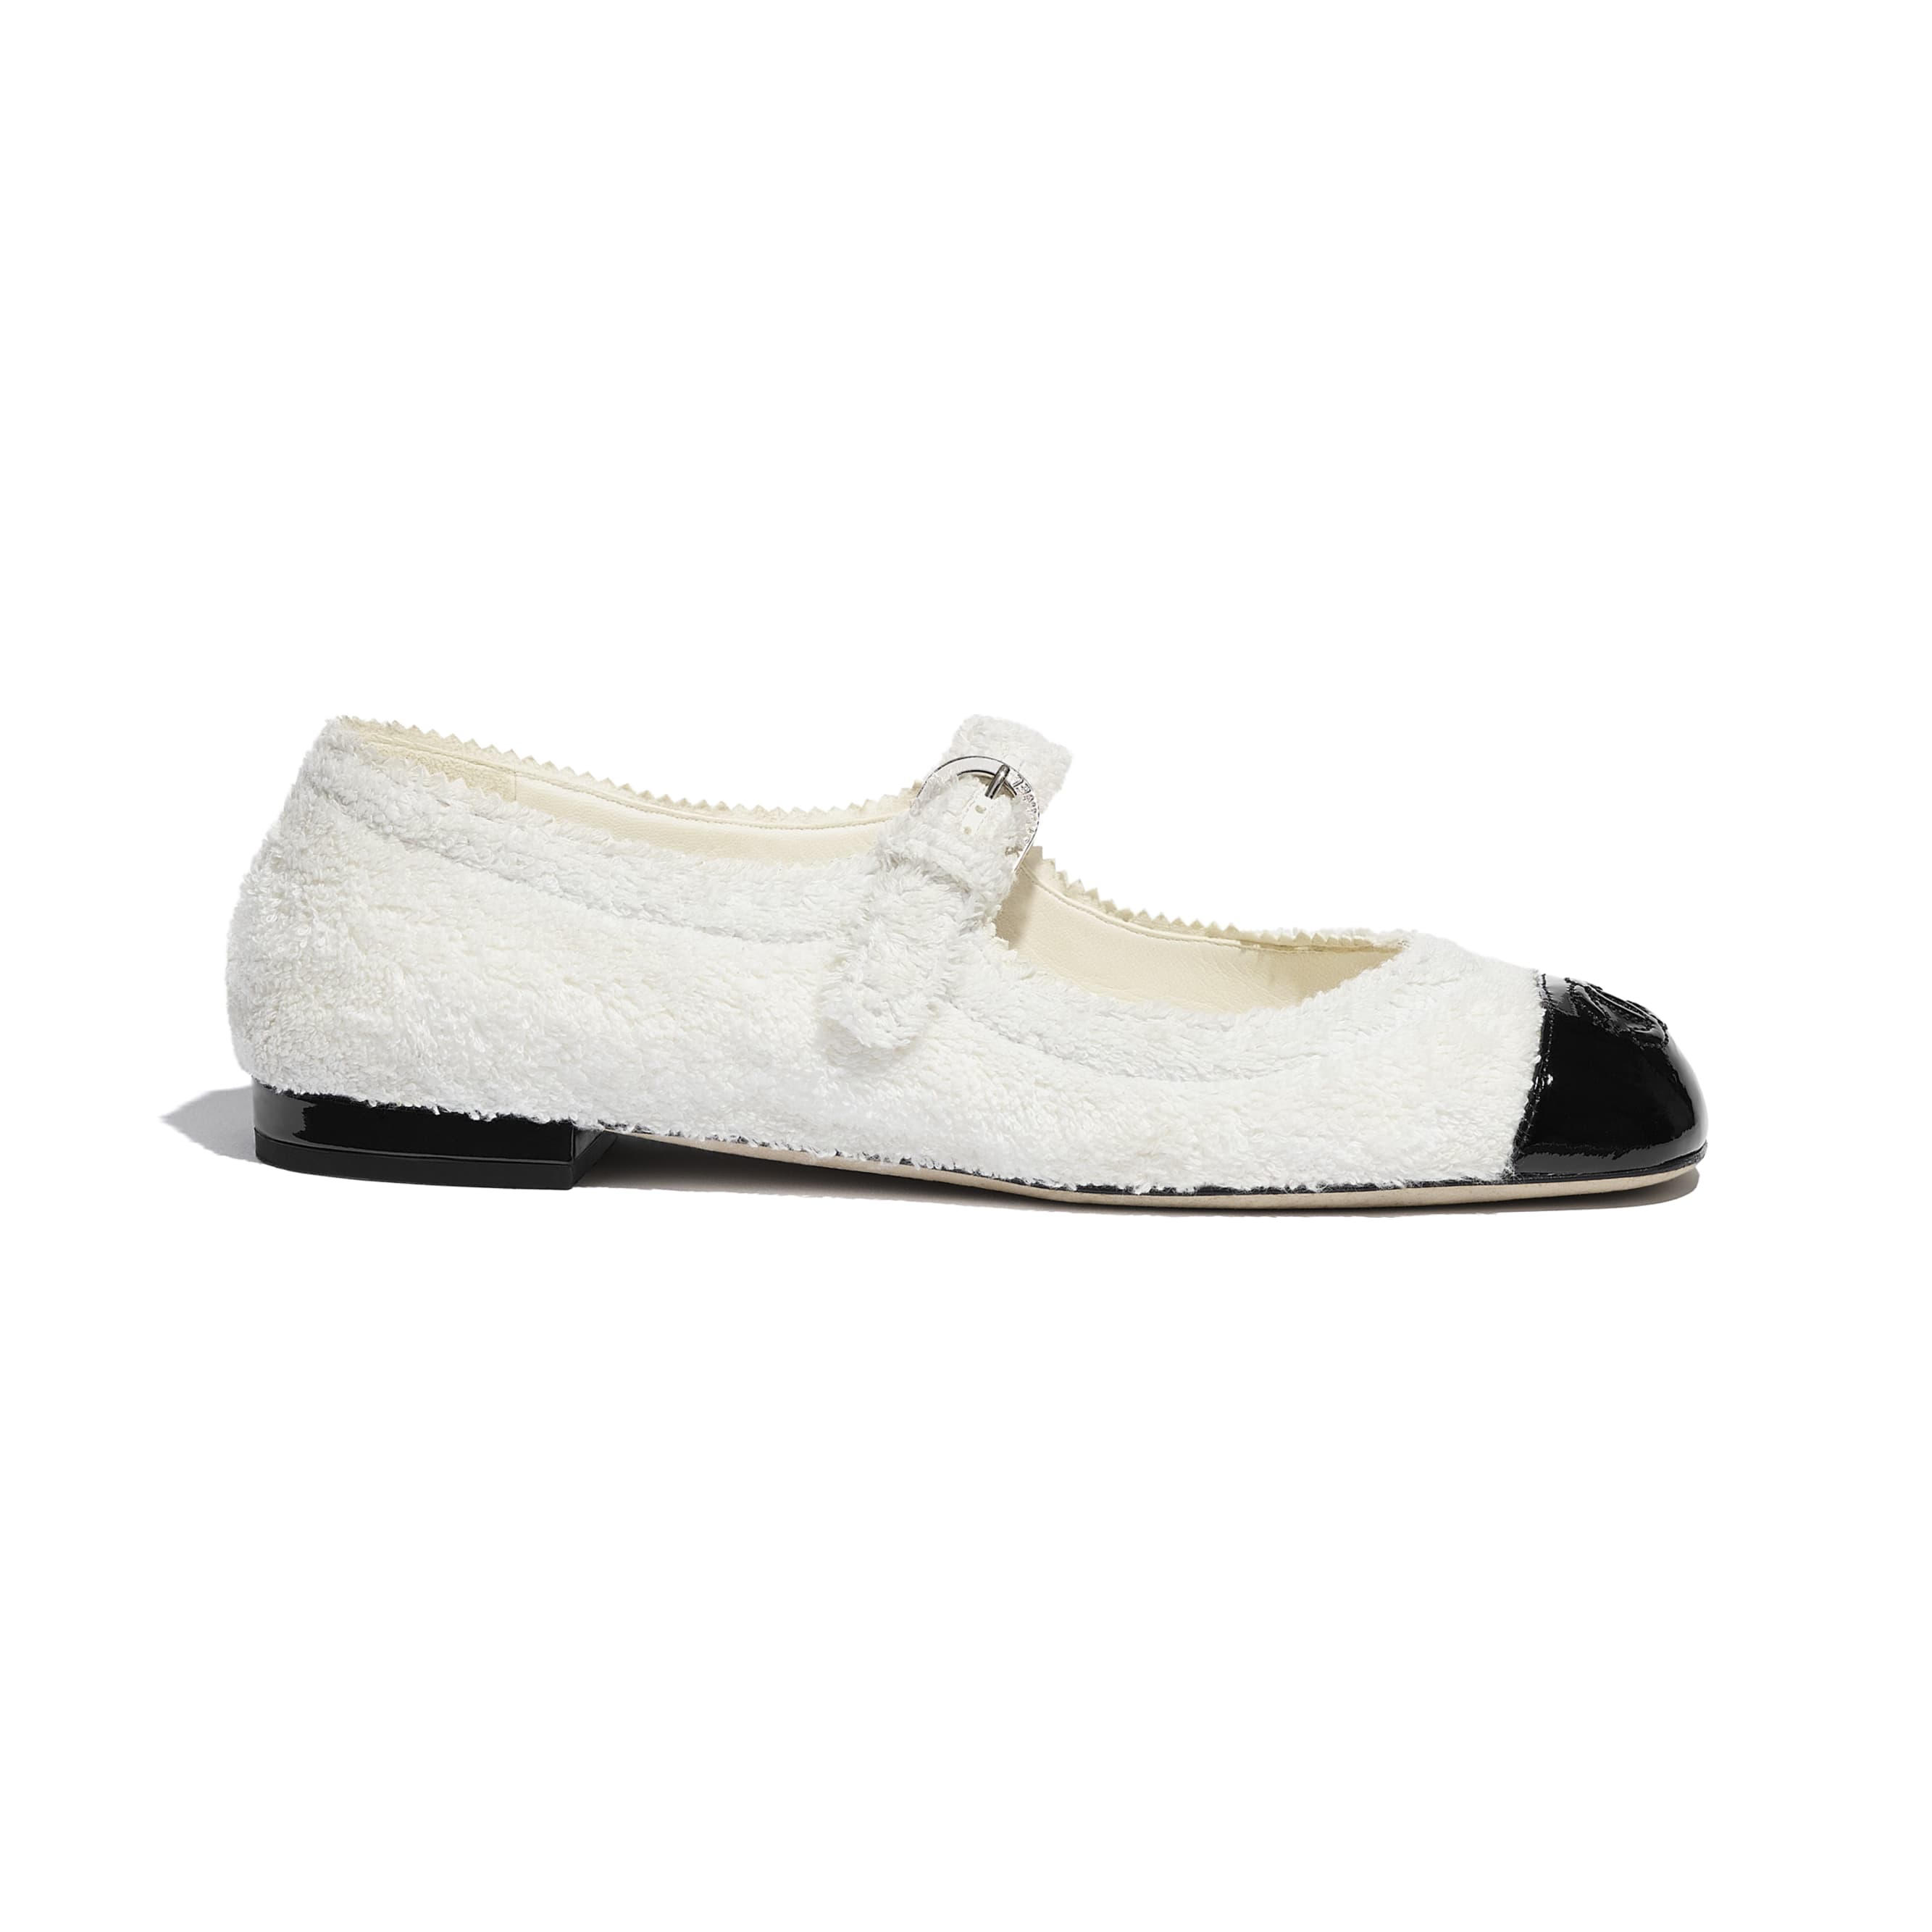 Mary Janes  - White & Black - Fabric & Patent Lambskin - CHANEL - Default view - see standard sized version